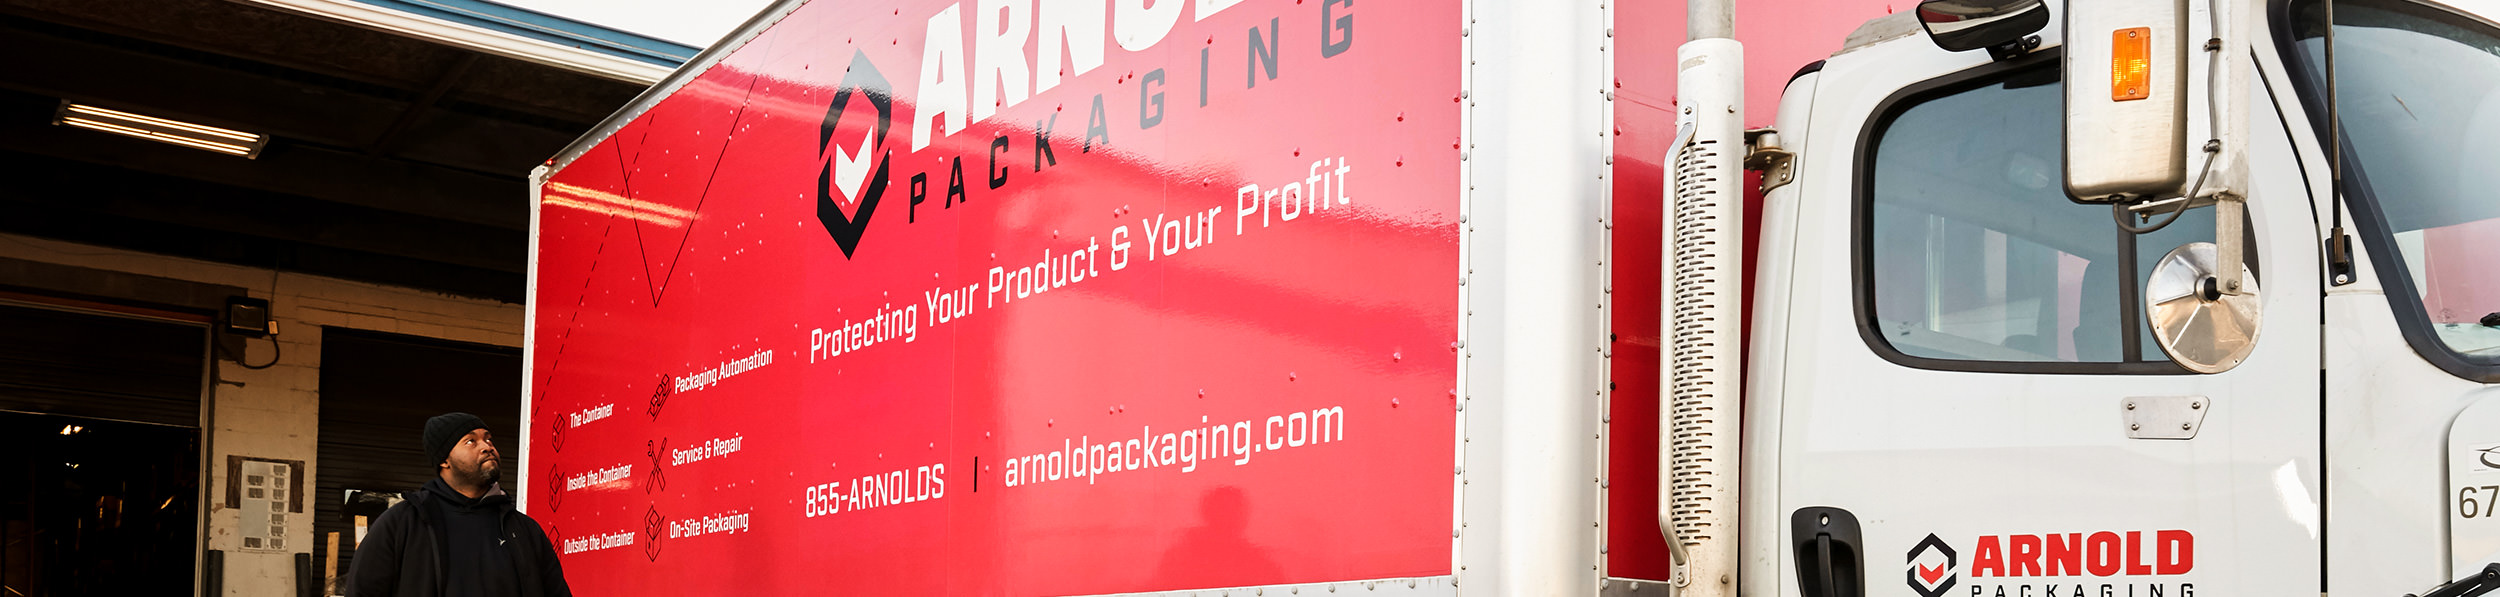 Arnold Packaging - Reduced Freight Cost